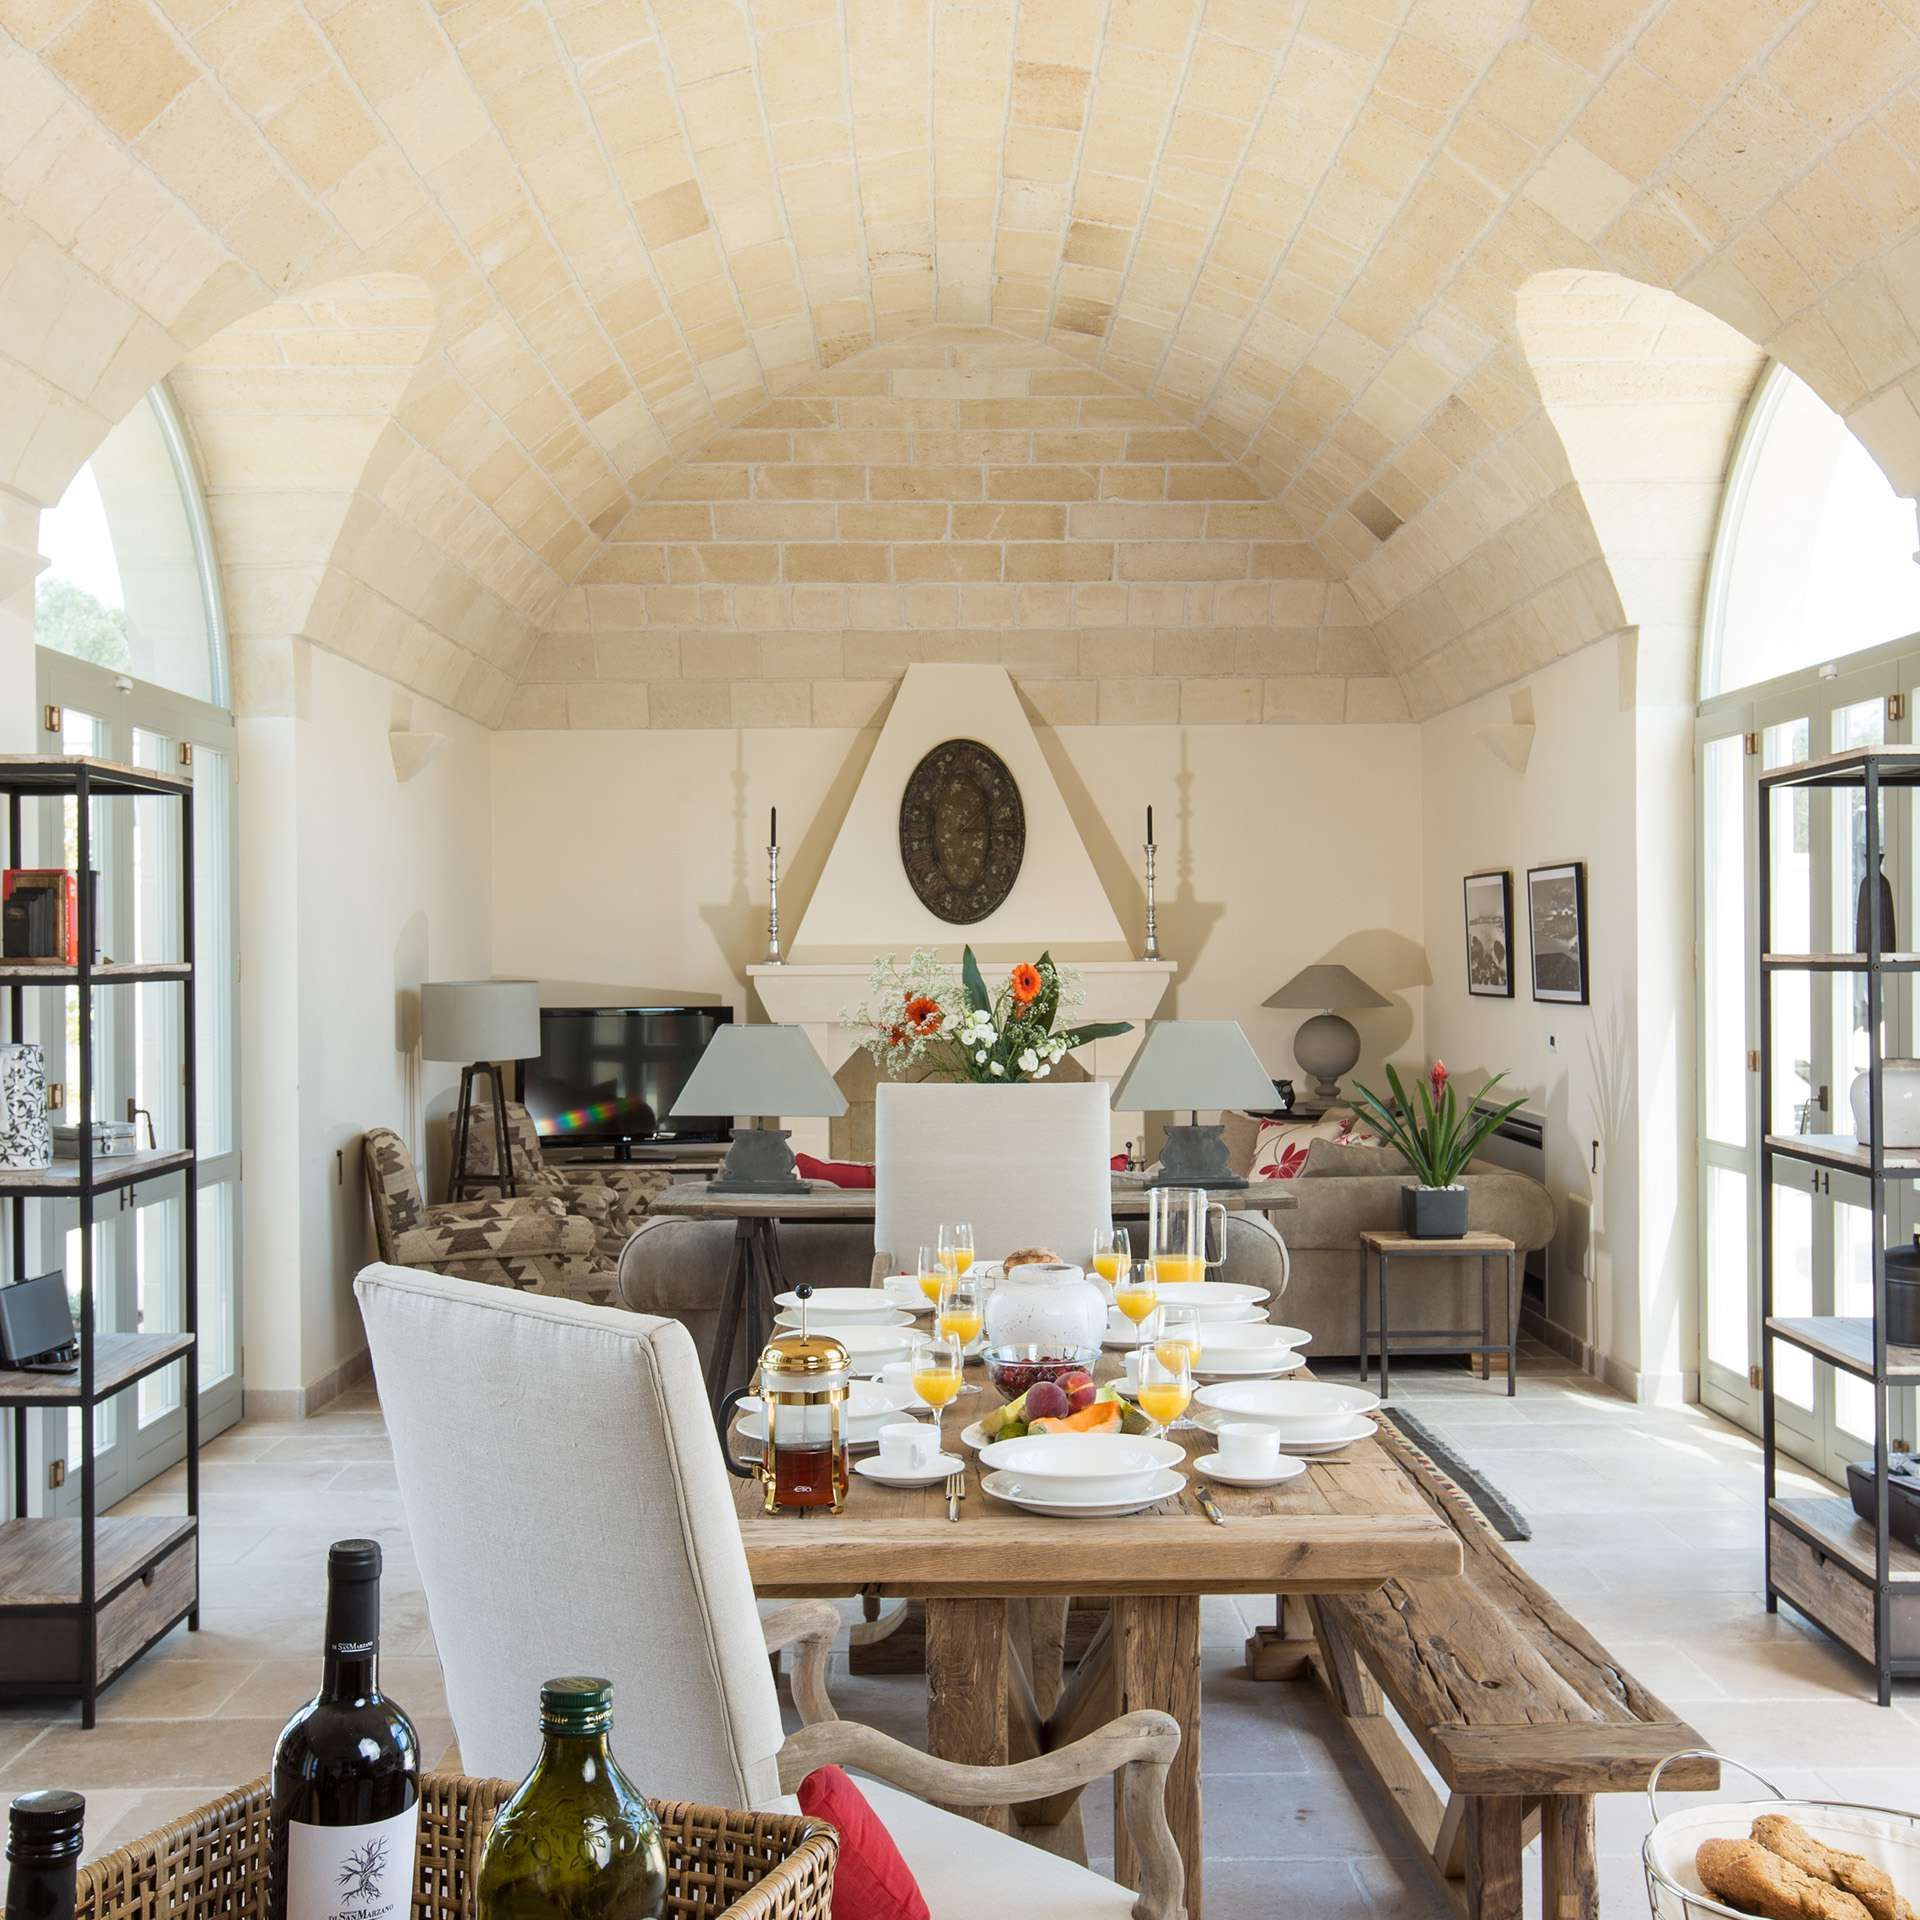 While modern in design and convenience, our Puglia